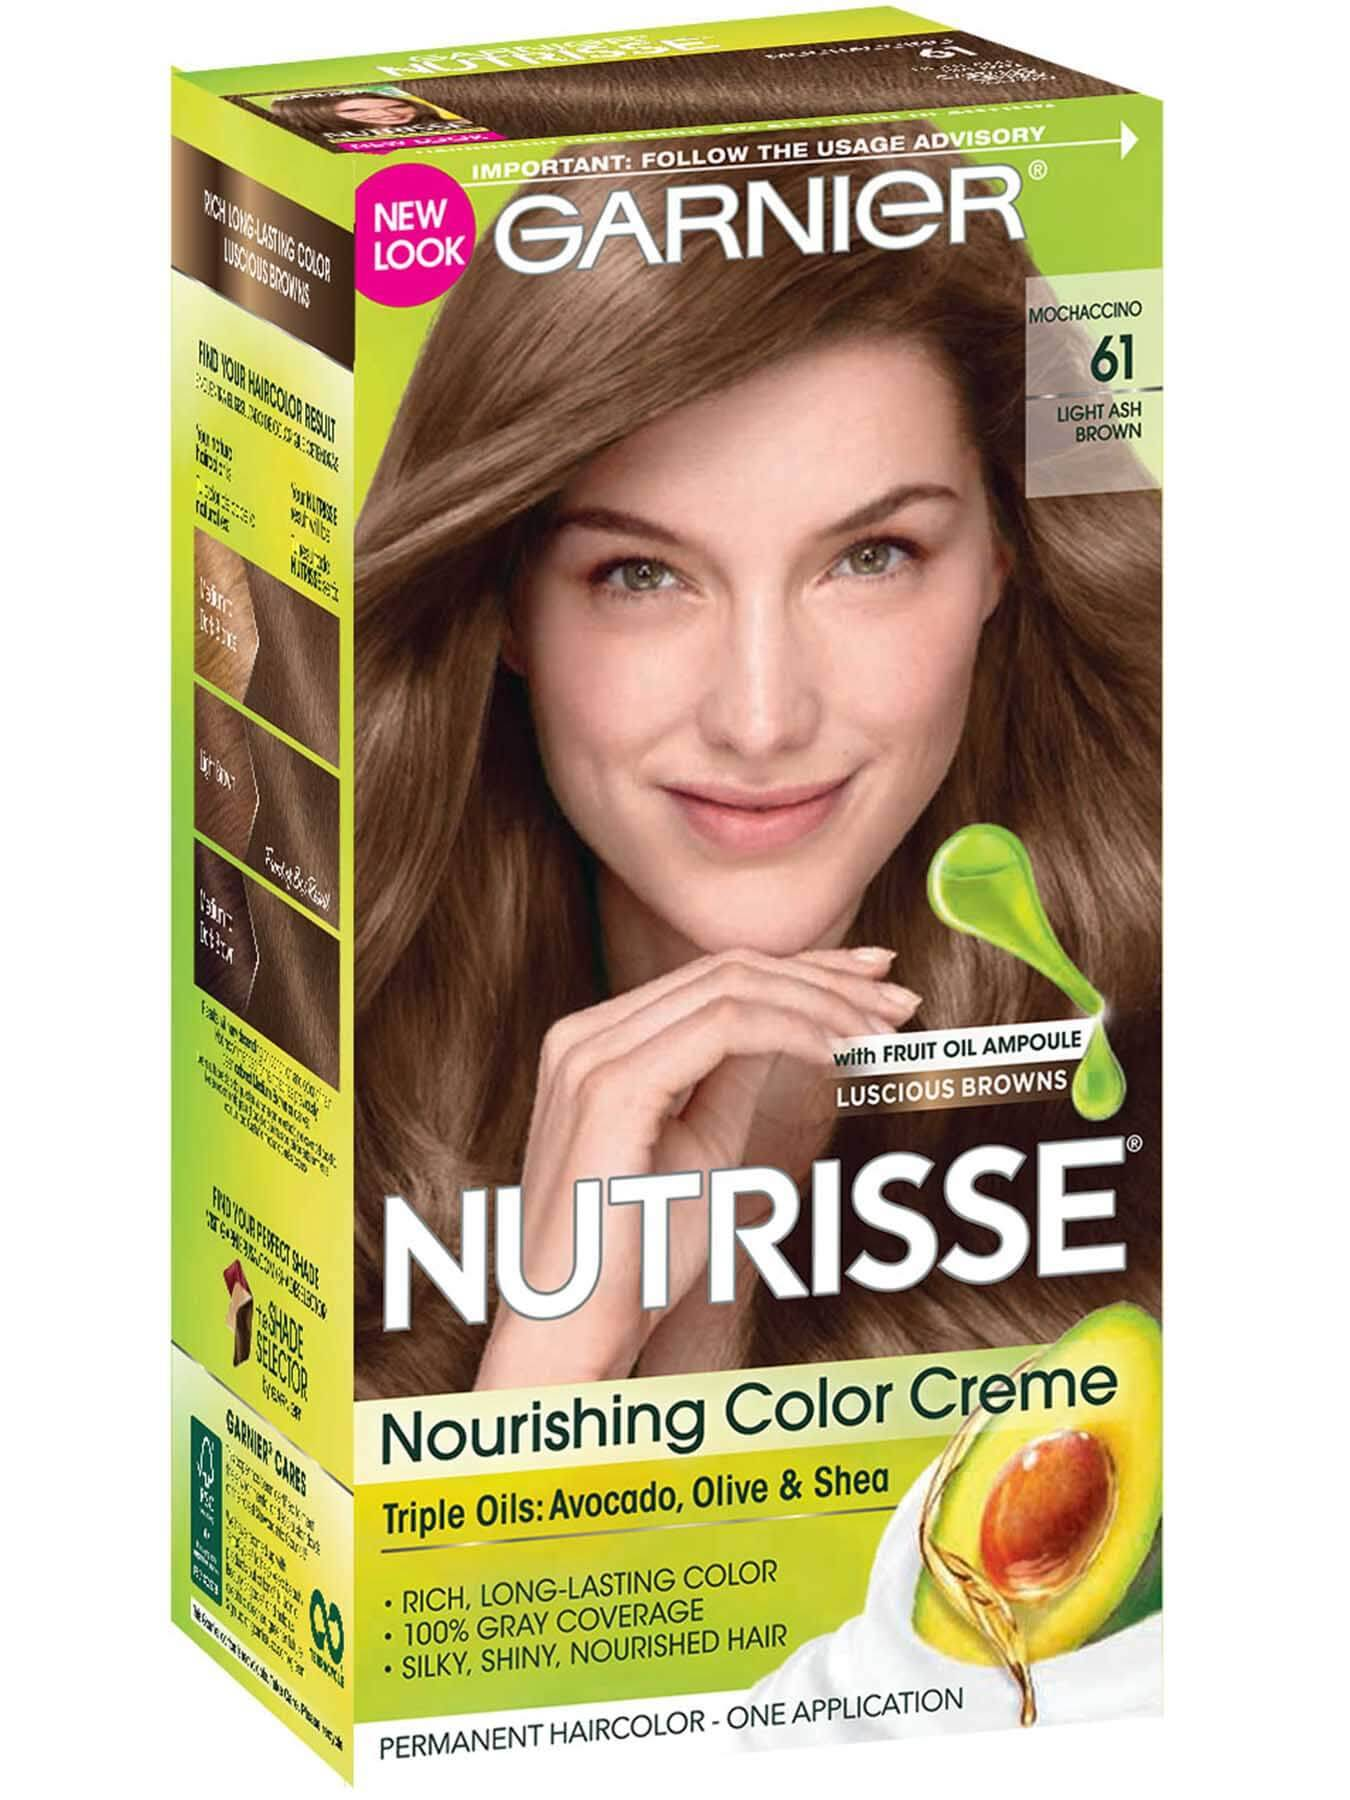 Nutrisse Nourishing Color Creme Light Ash Brown 61 Garnier